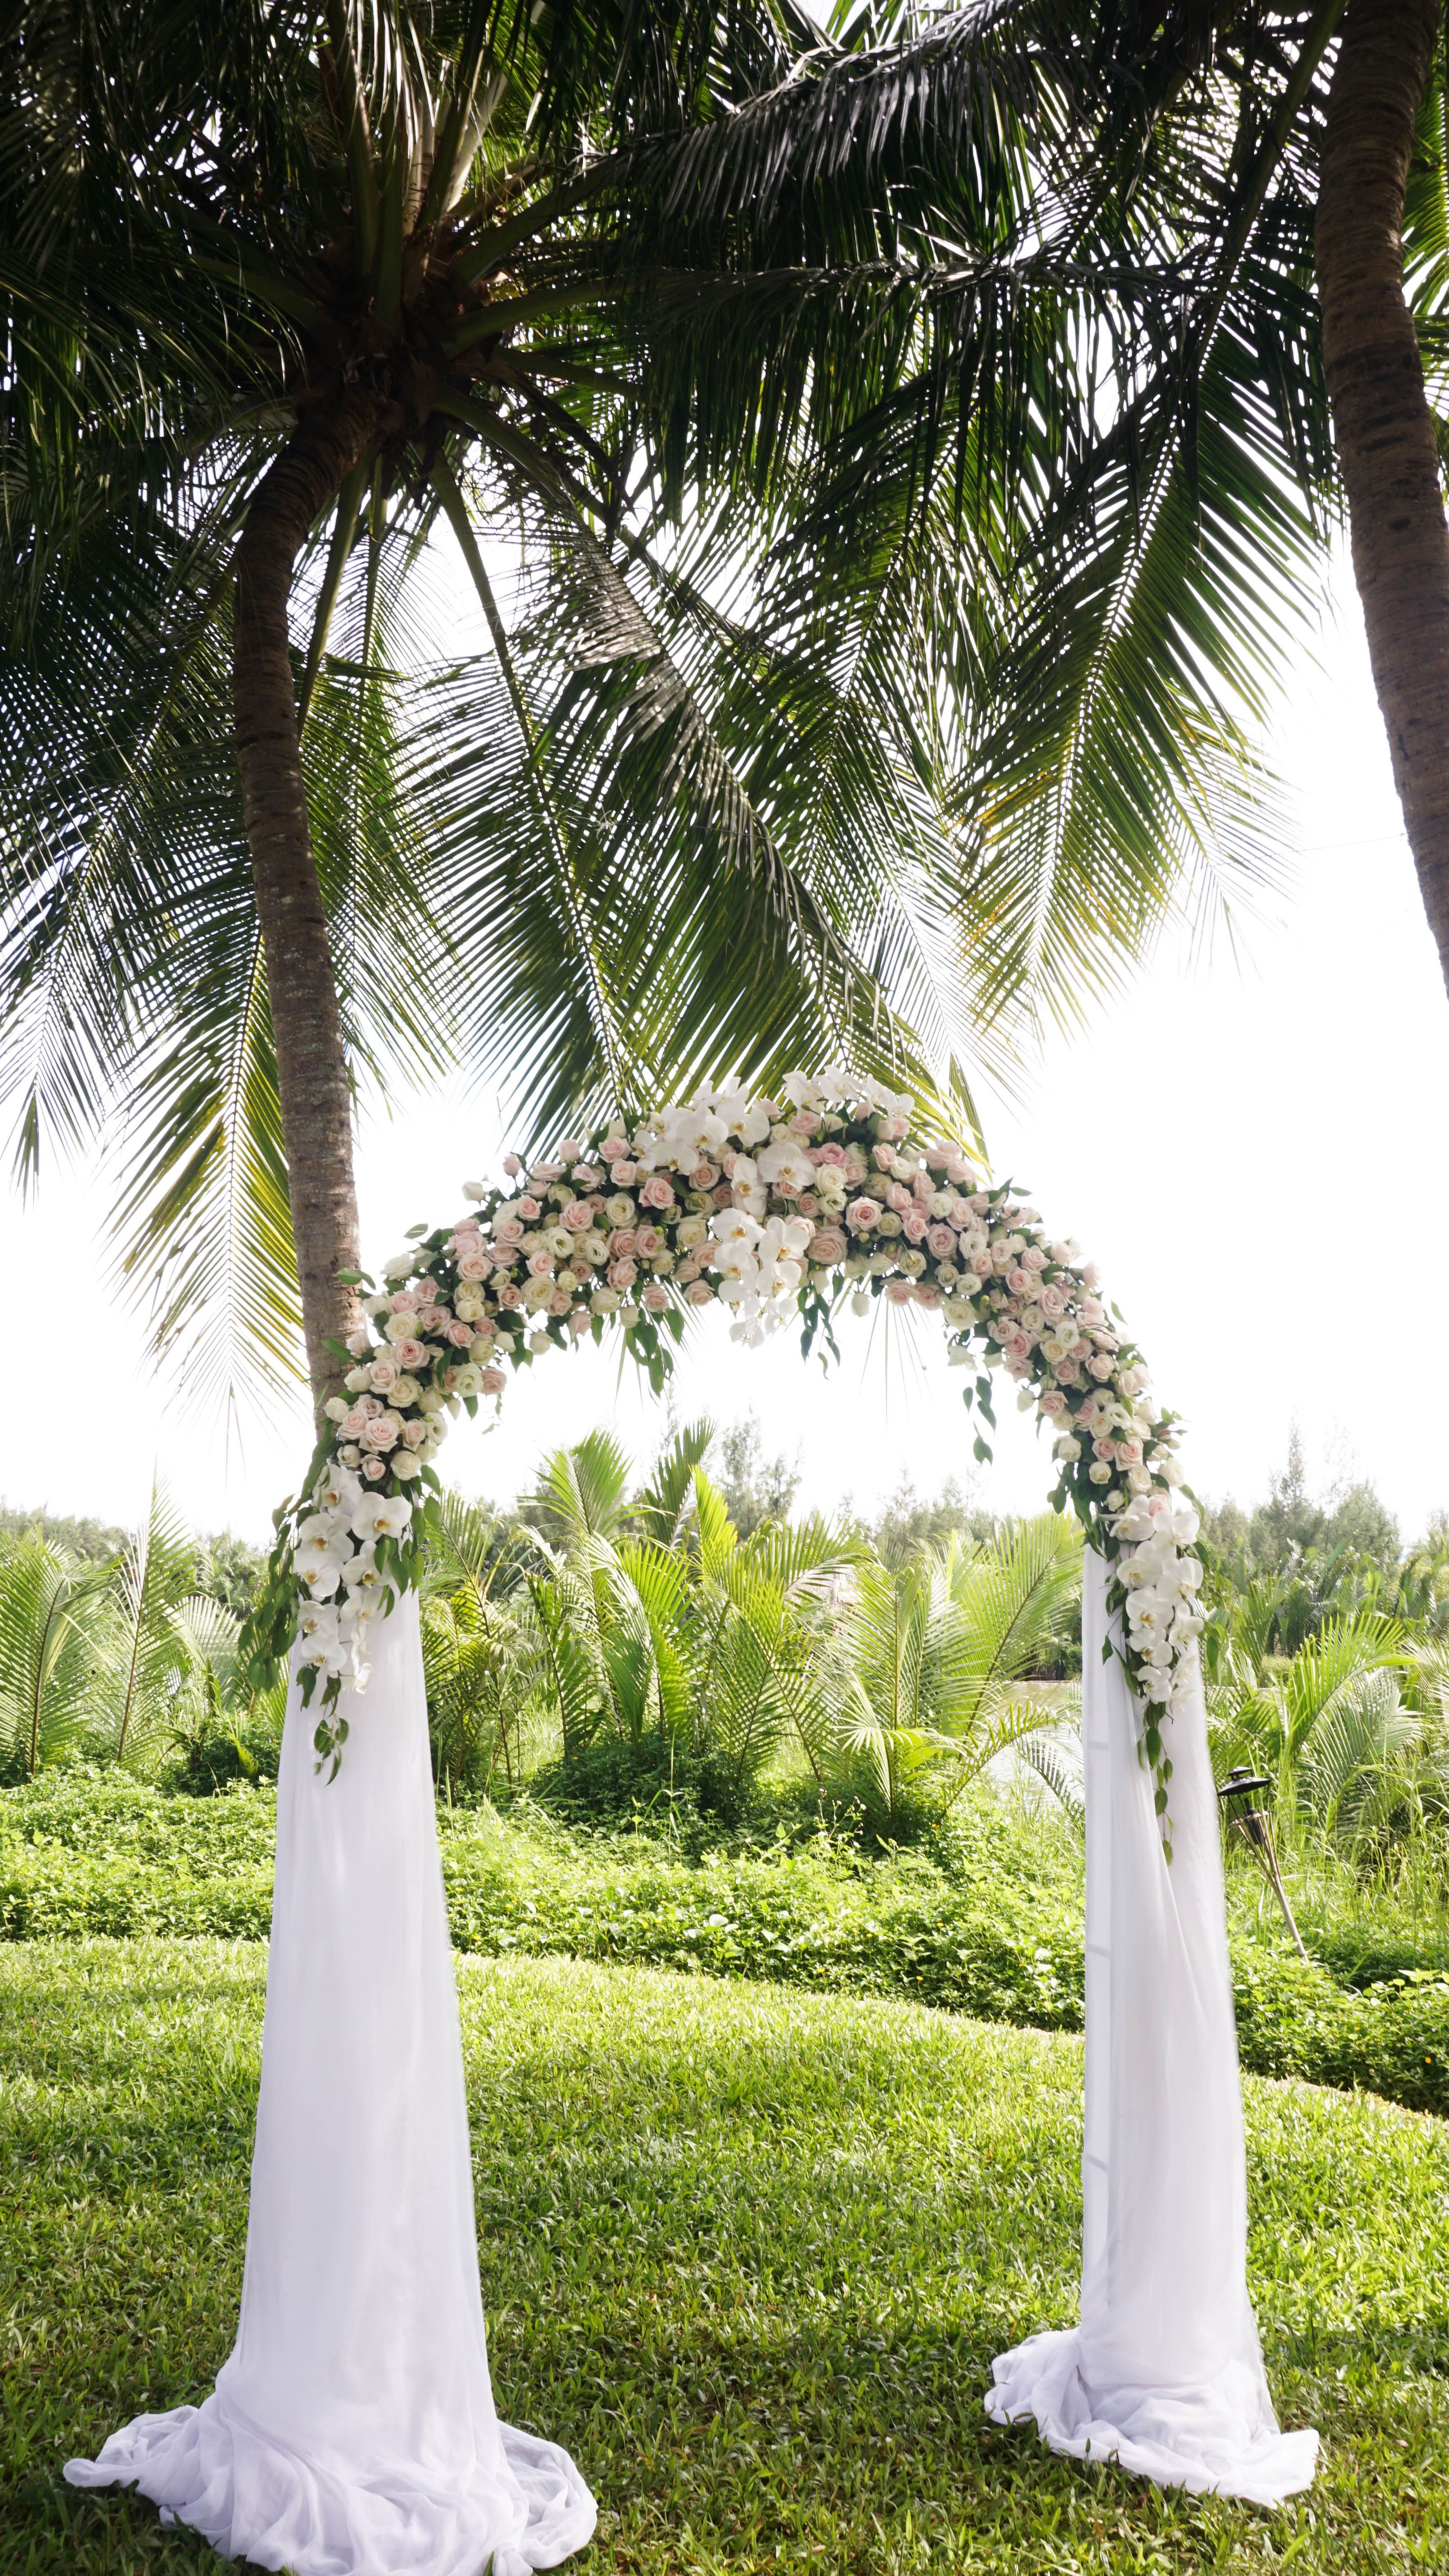 Flowing white floral fabric archway for your fairy tale